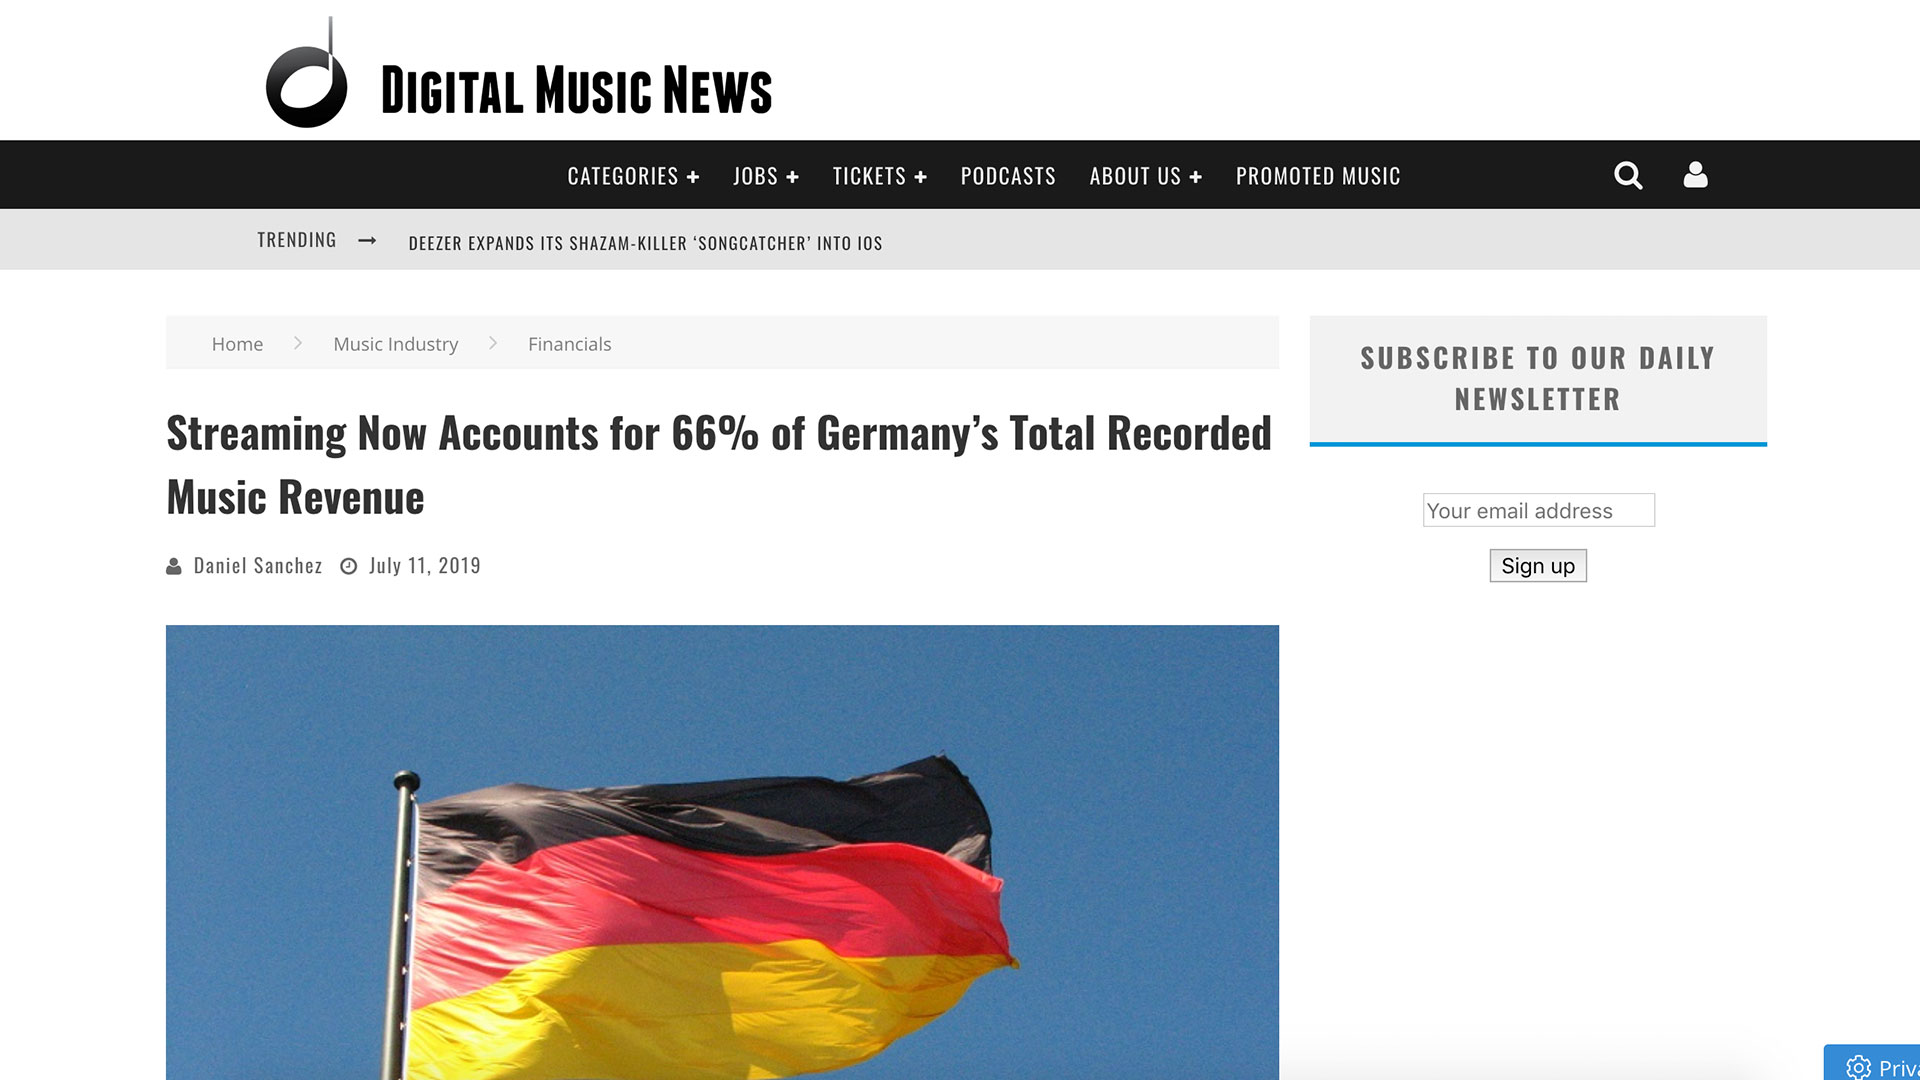 Fairness Rocks News Streaming Now Accounts for 66% of Germany's Total Recorded Music Revenue